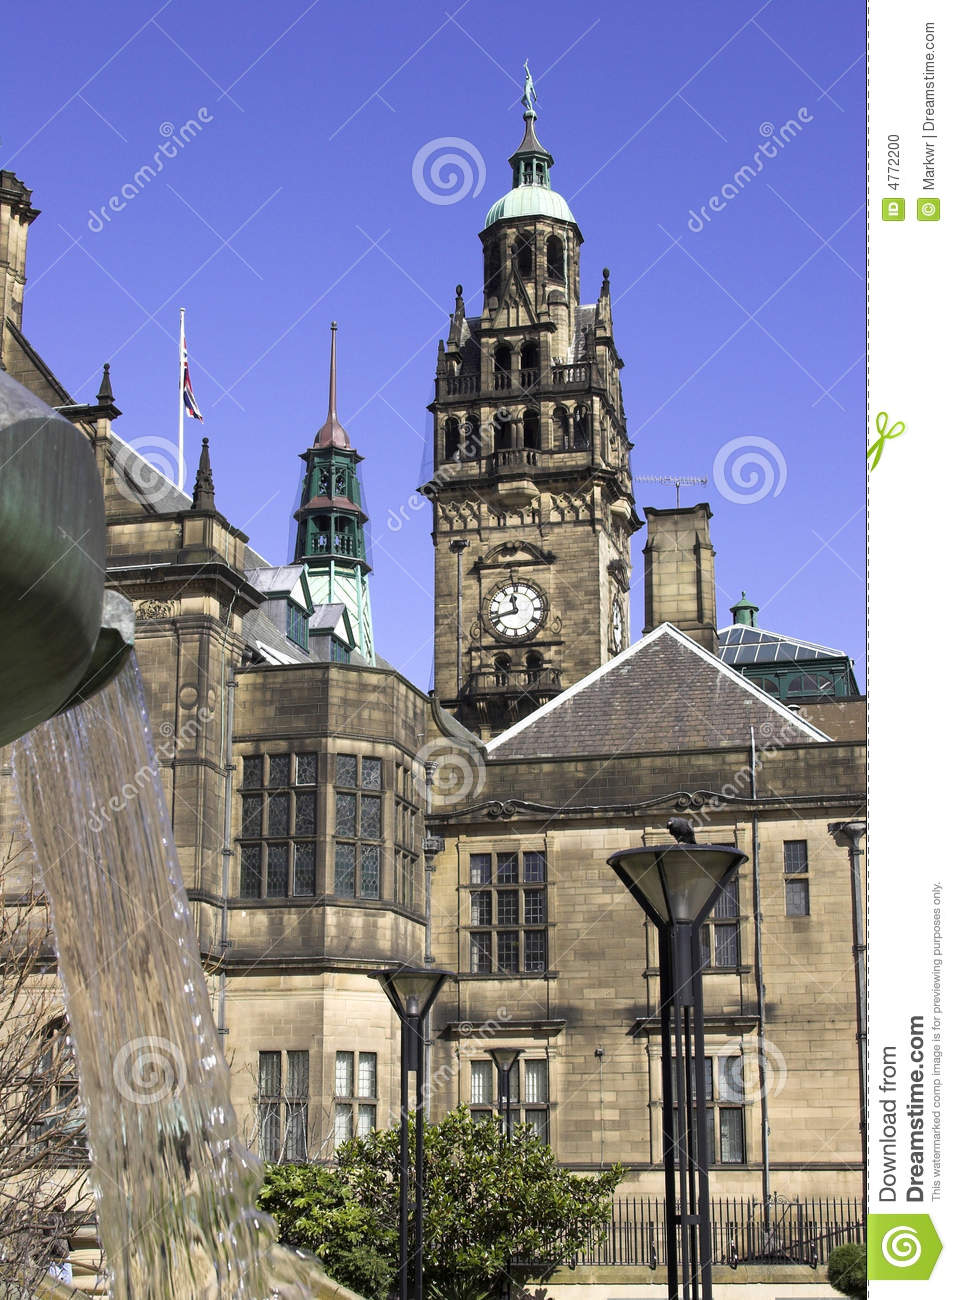 town hall sheffield england stock photo image 4772200. Black Bedroom Furniture Sets. Home Design Ideas